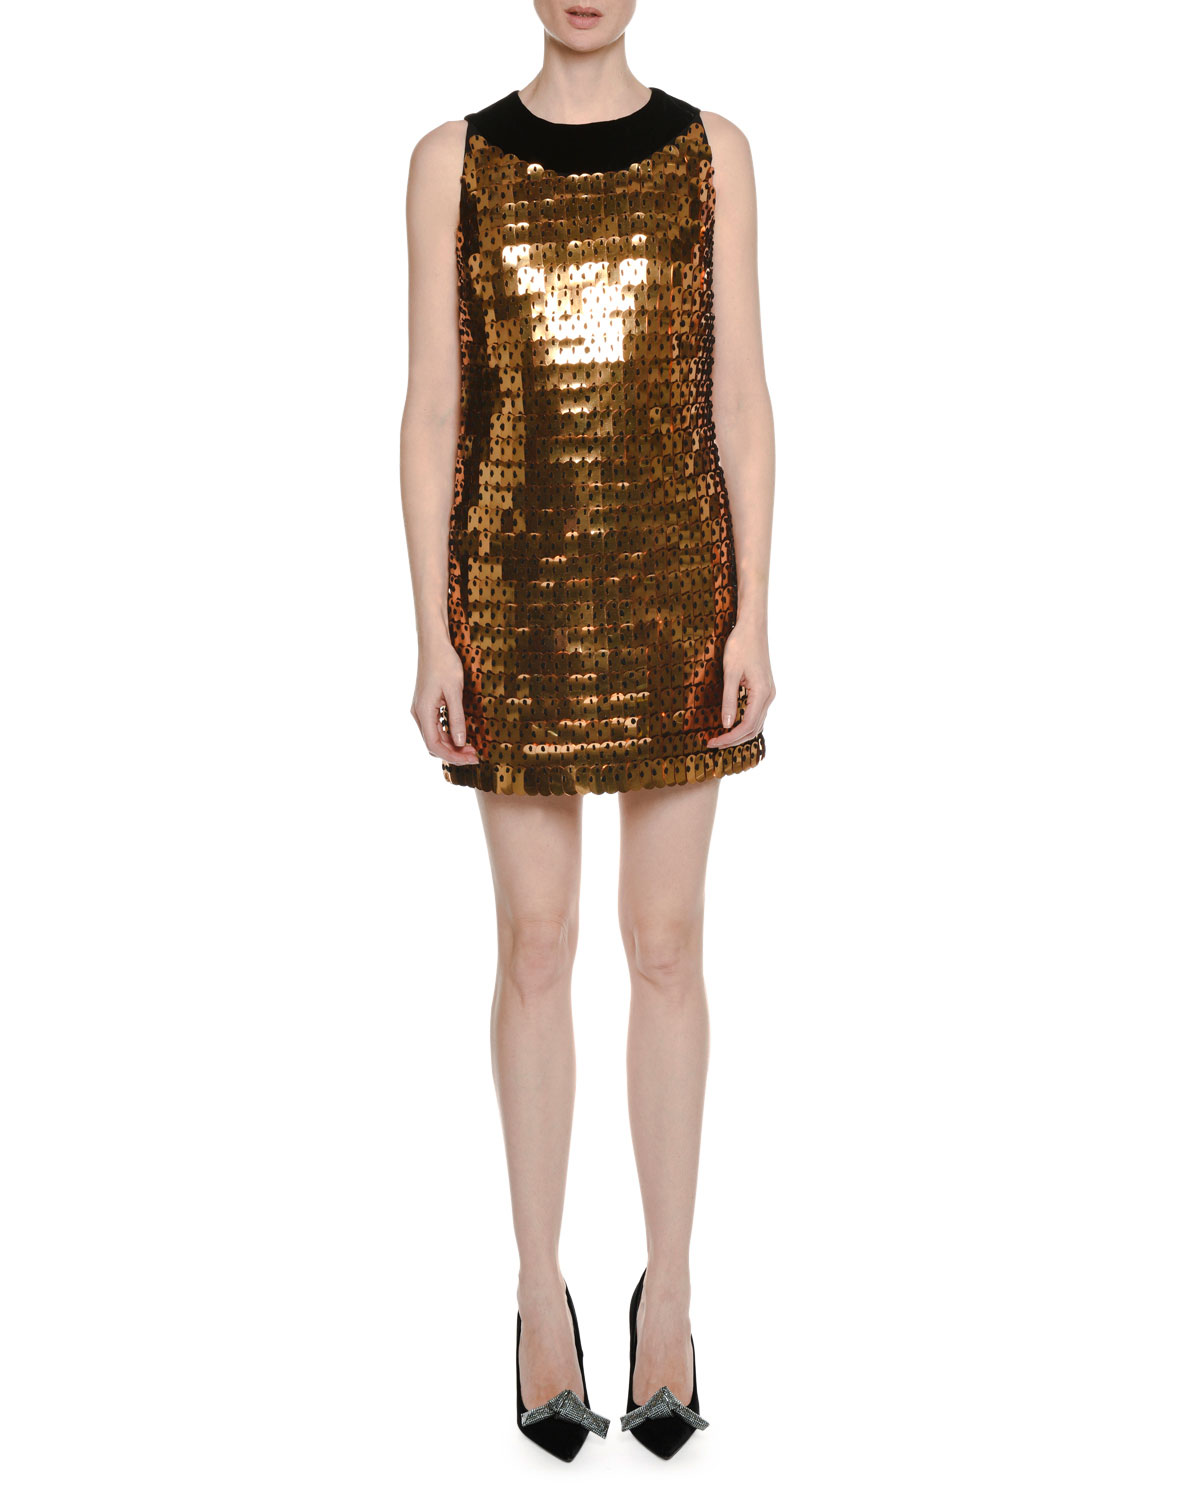 9b96e8b2960 tom ford cocktail dresses for women - Buy best women s tom ford cocktail  dresses on Cools.com Shop